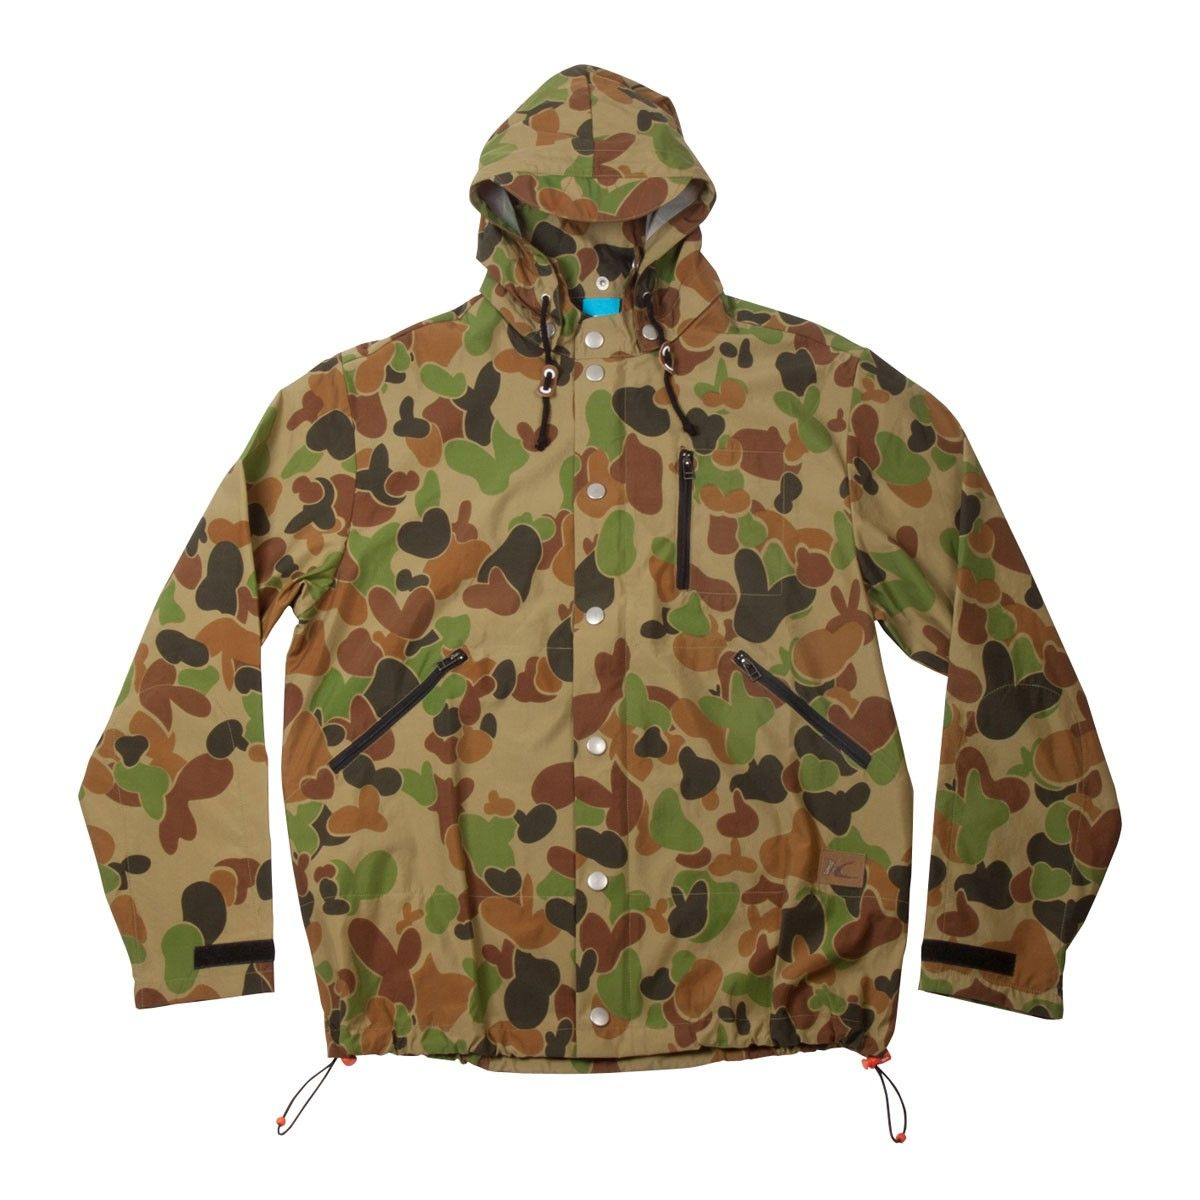 Duck camo rain mac | King Apparel British Streetwear